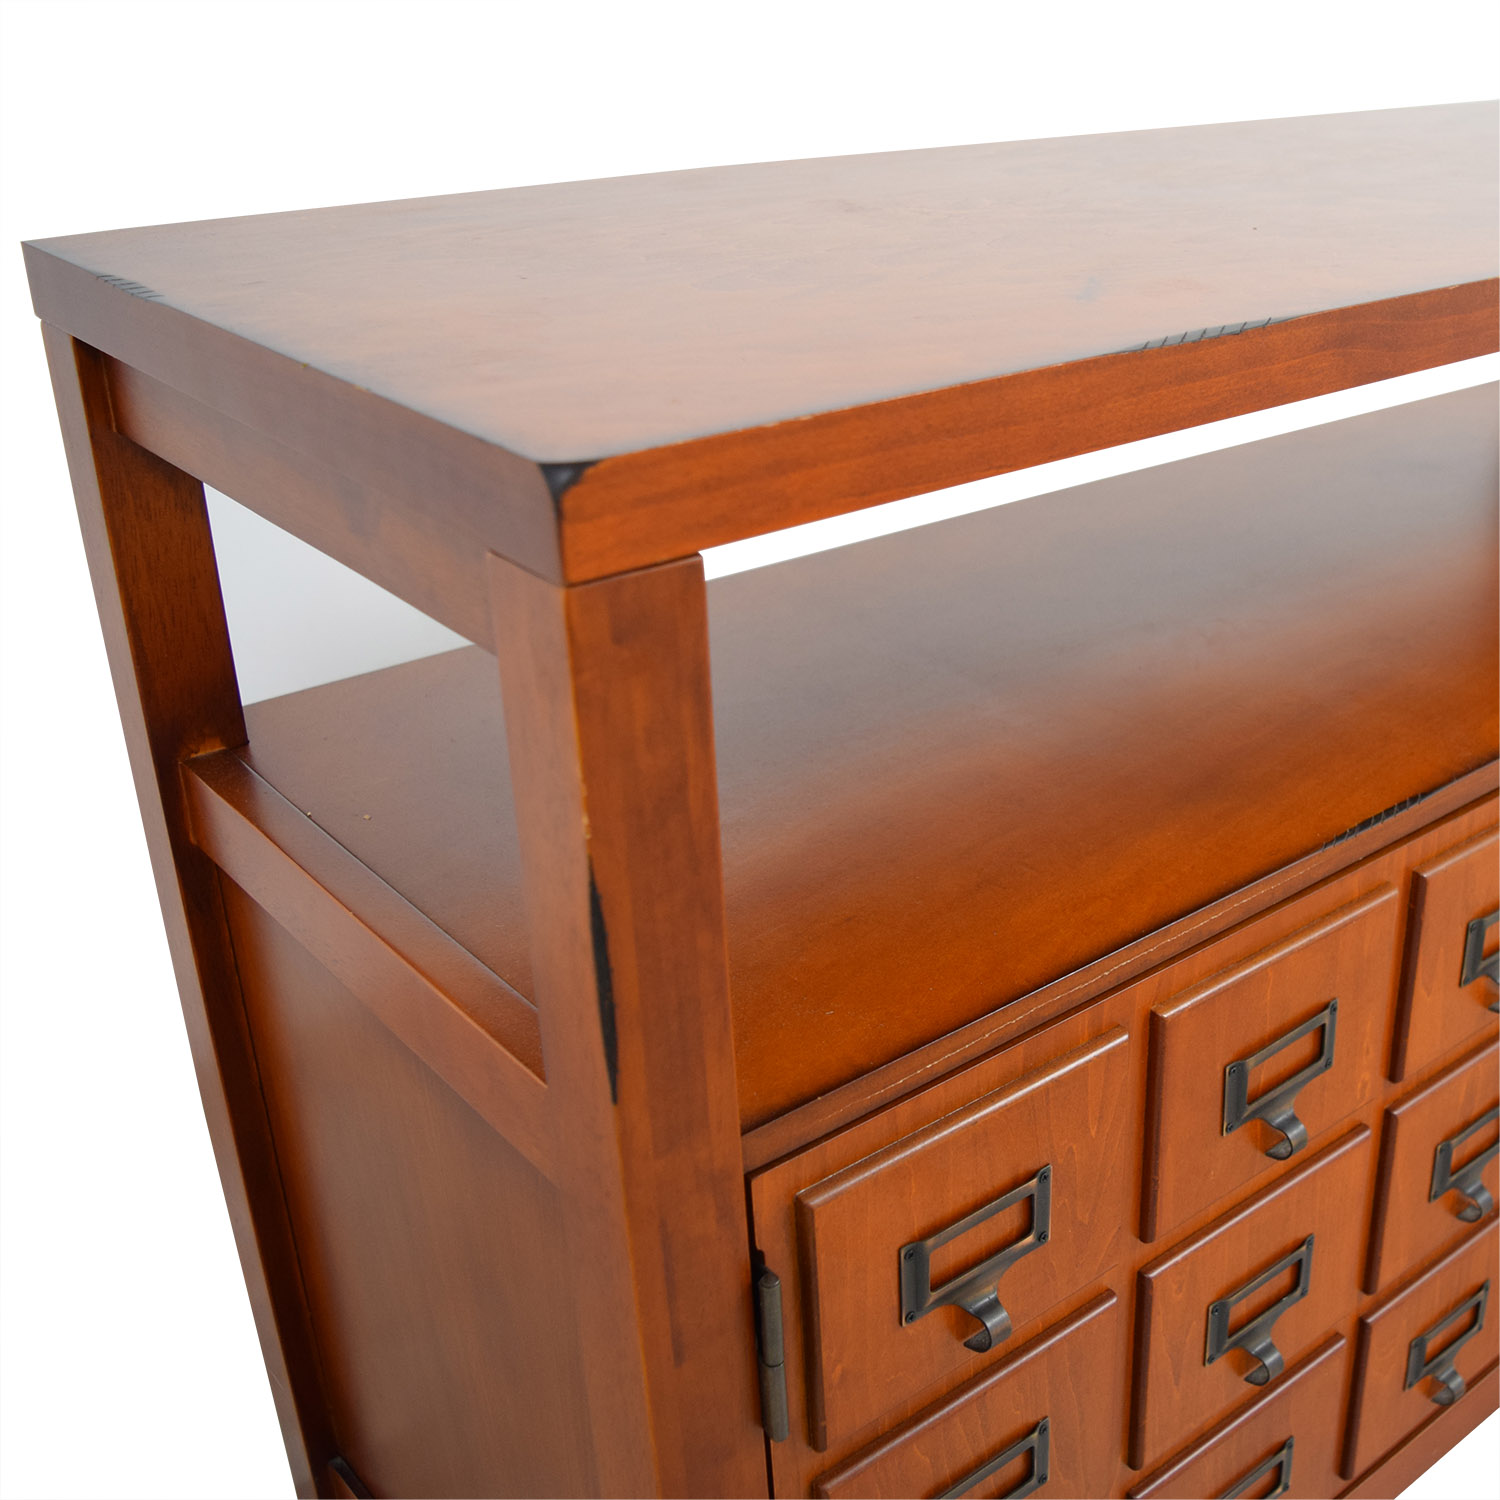 buy Wood TV Cabinet with Shelves online